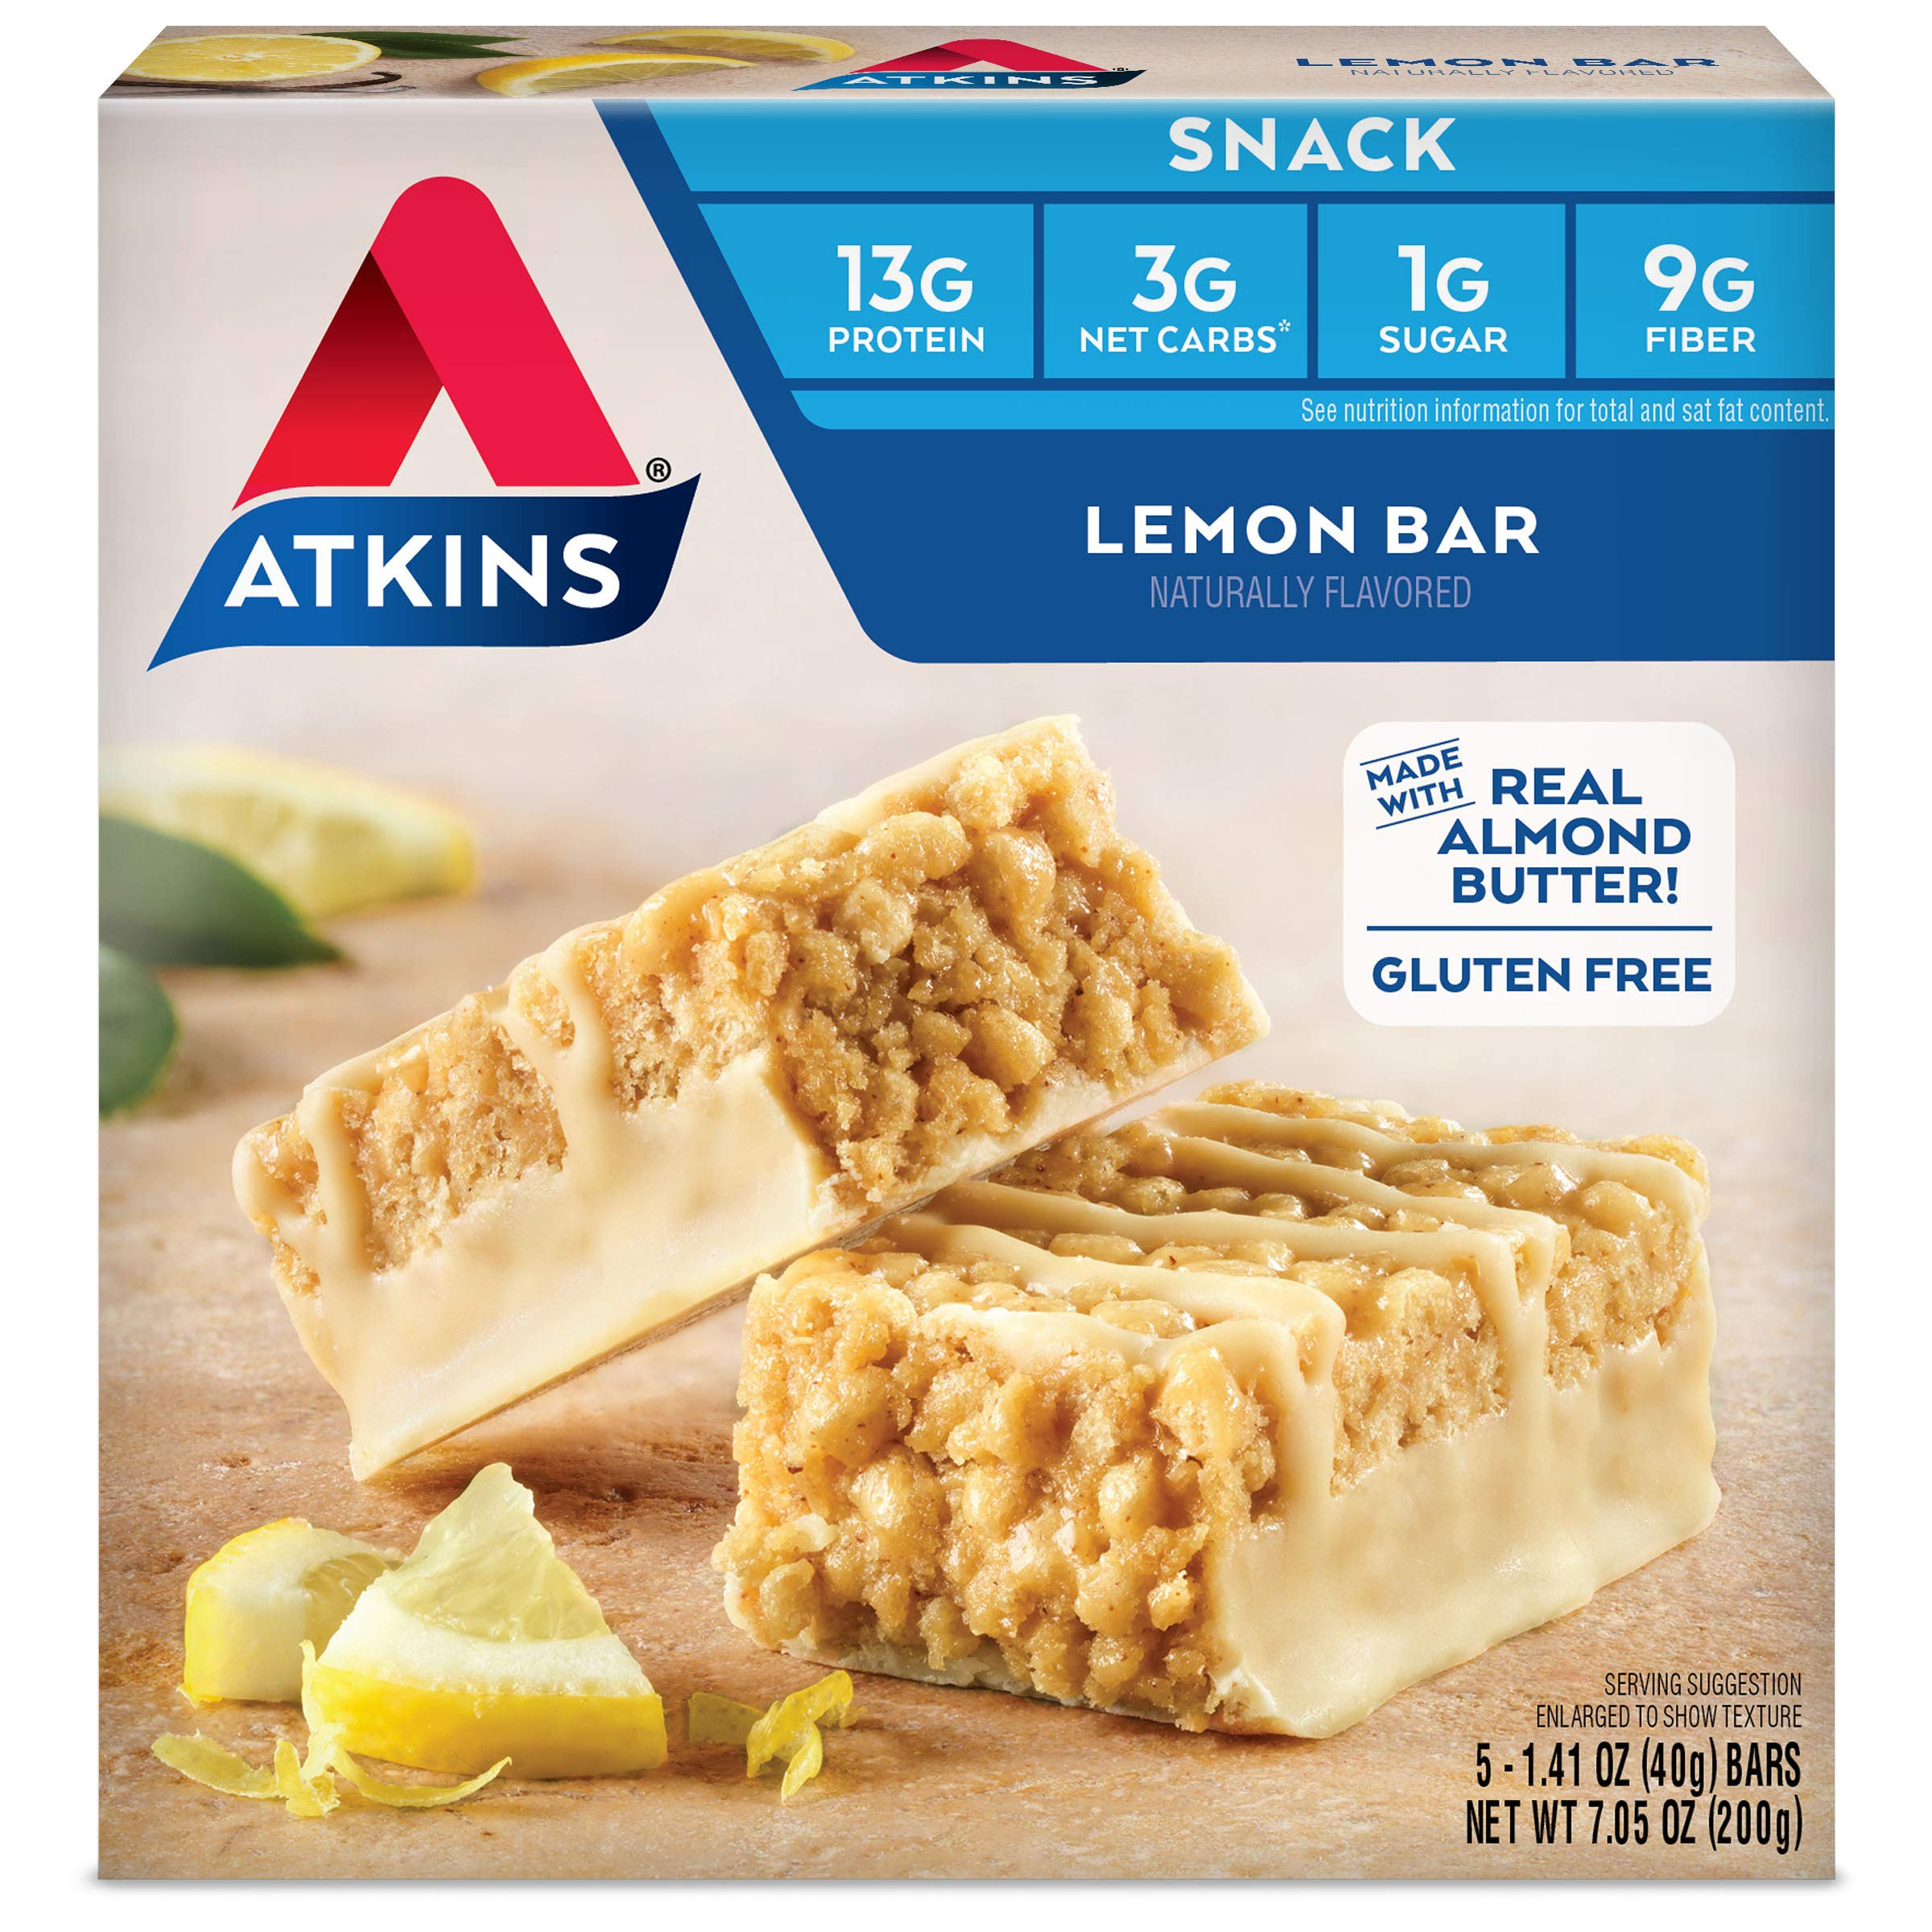 Atkins Gluten Free Snack Bar, Lemon Bar, 5 Count (Pack of 6) by Atkins (Image #1)